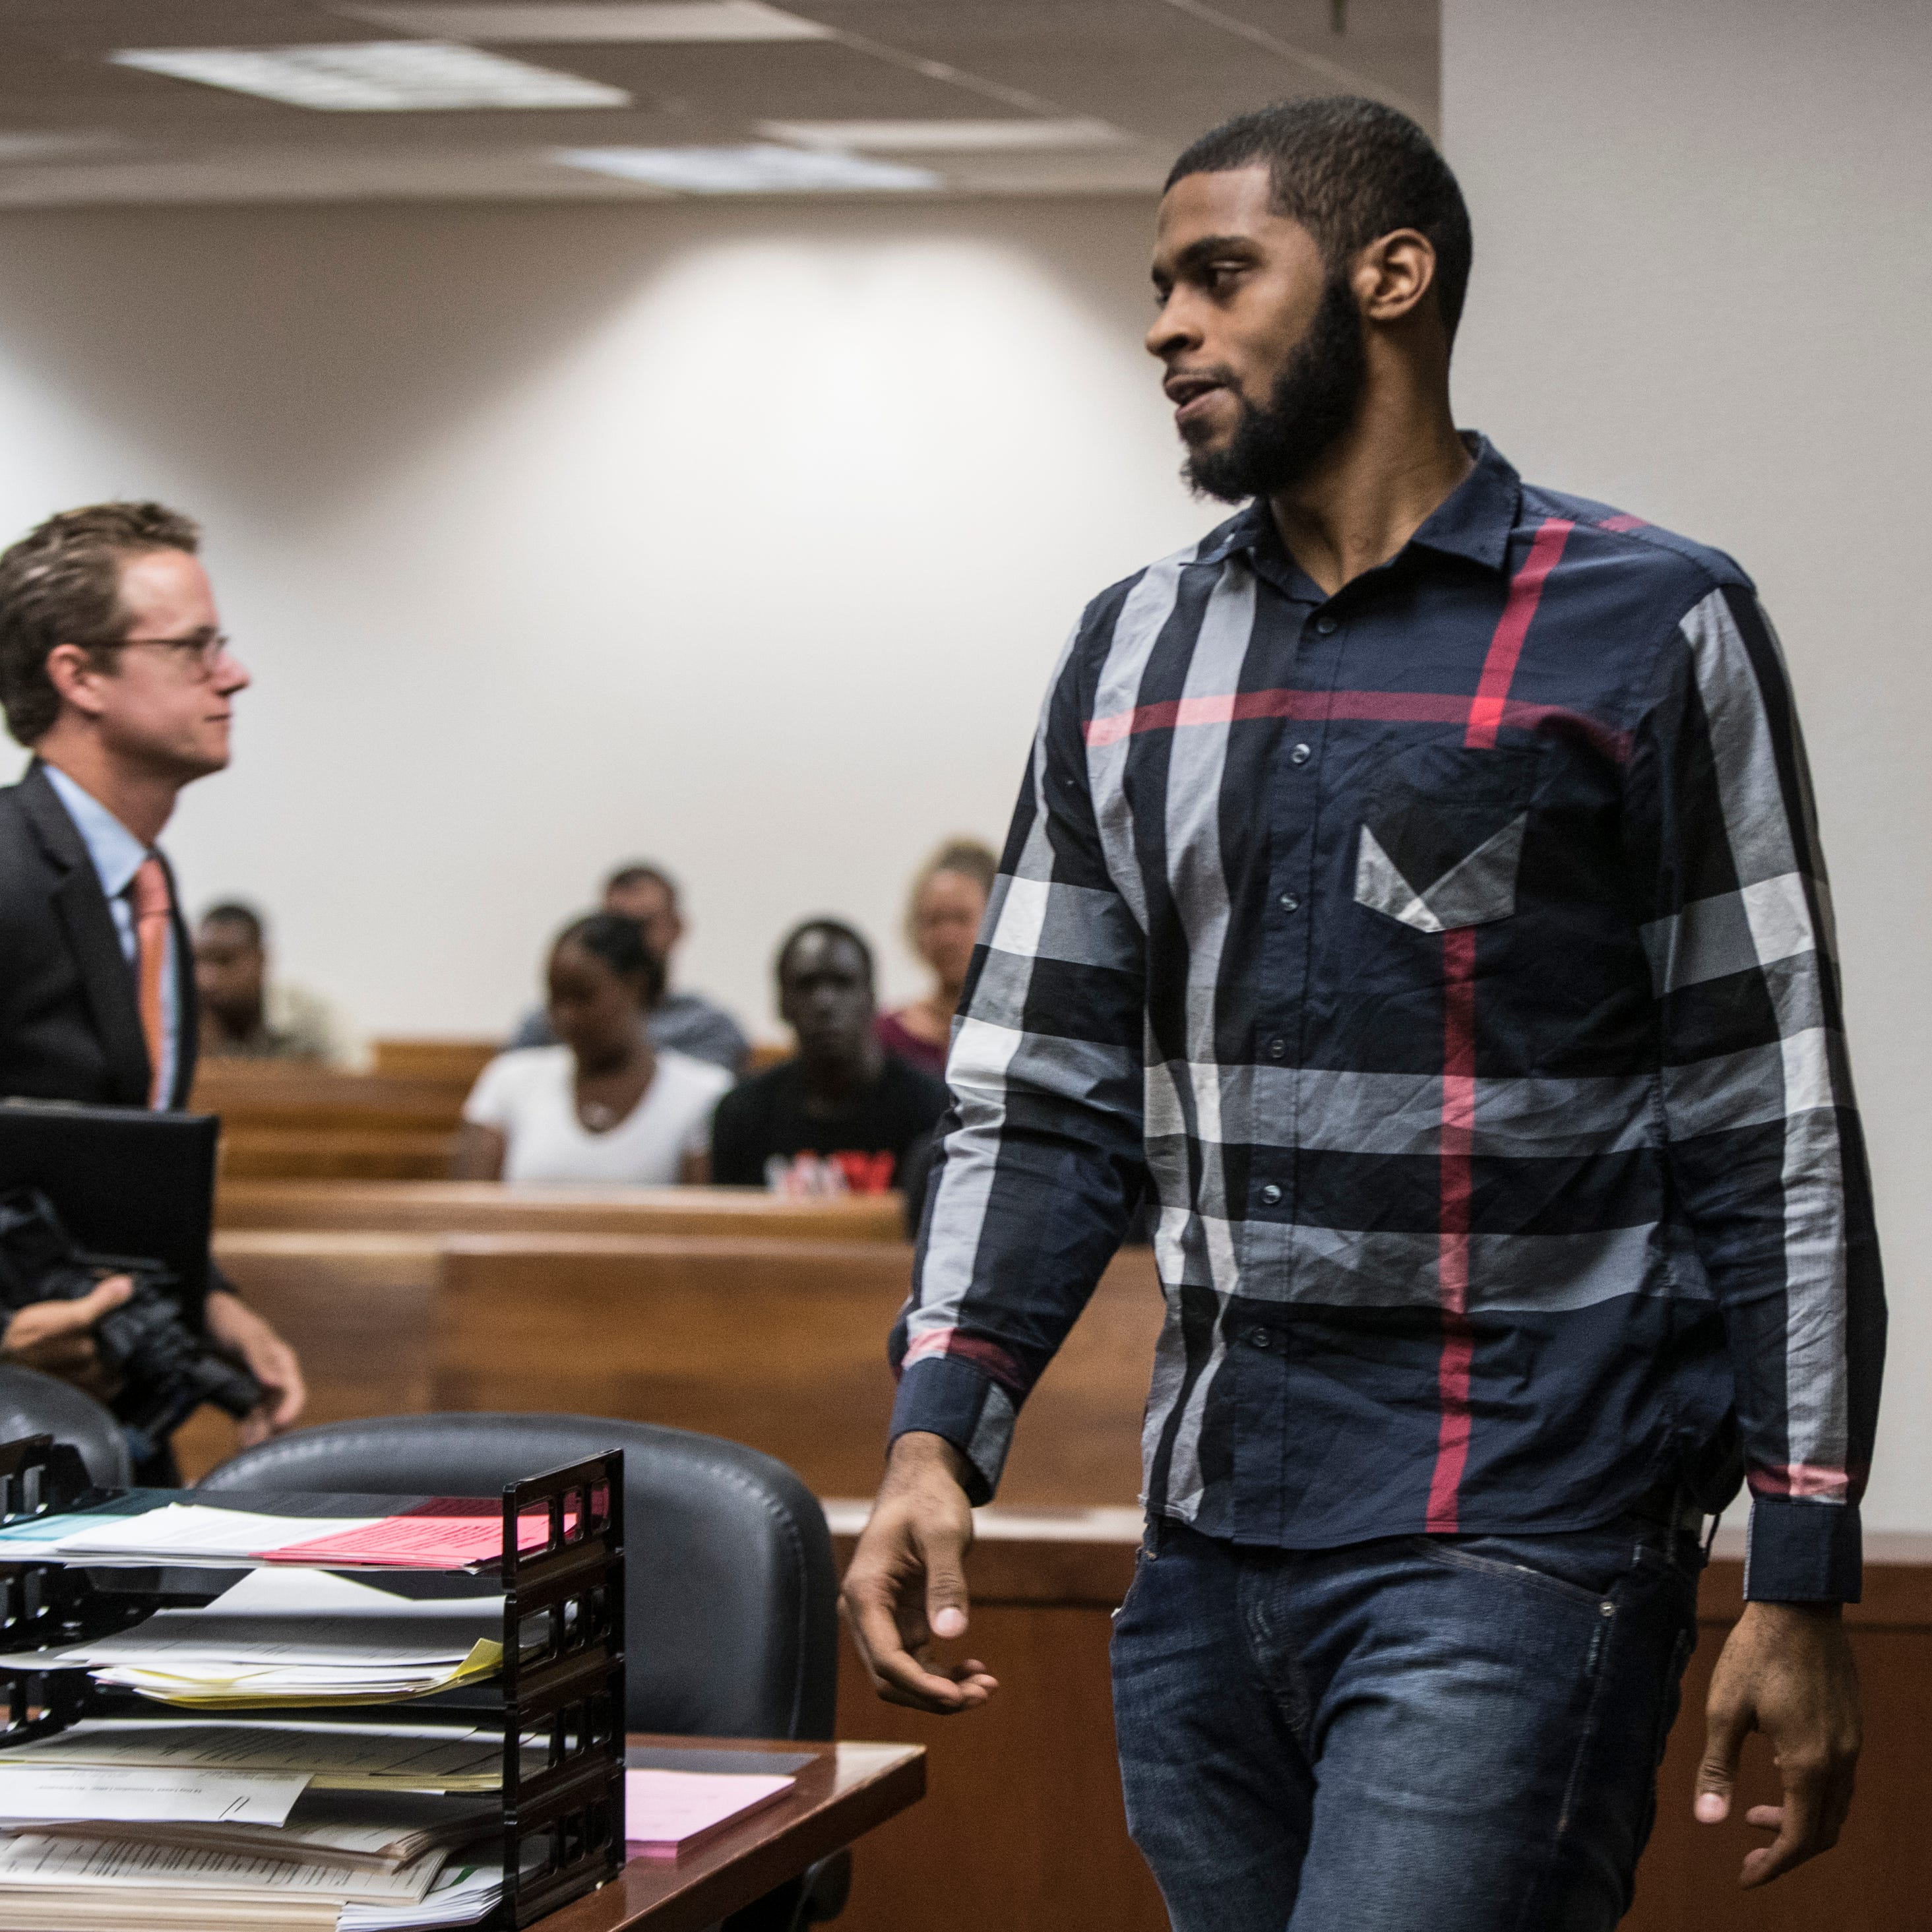 Drug, gun charges dropped against ex-Louisville player Chane Behanan